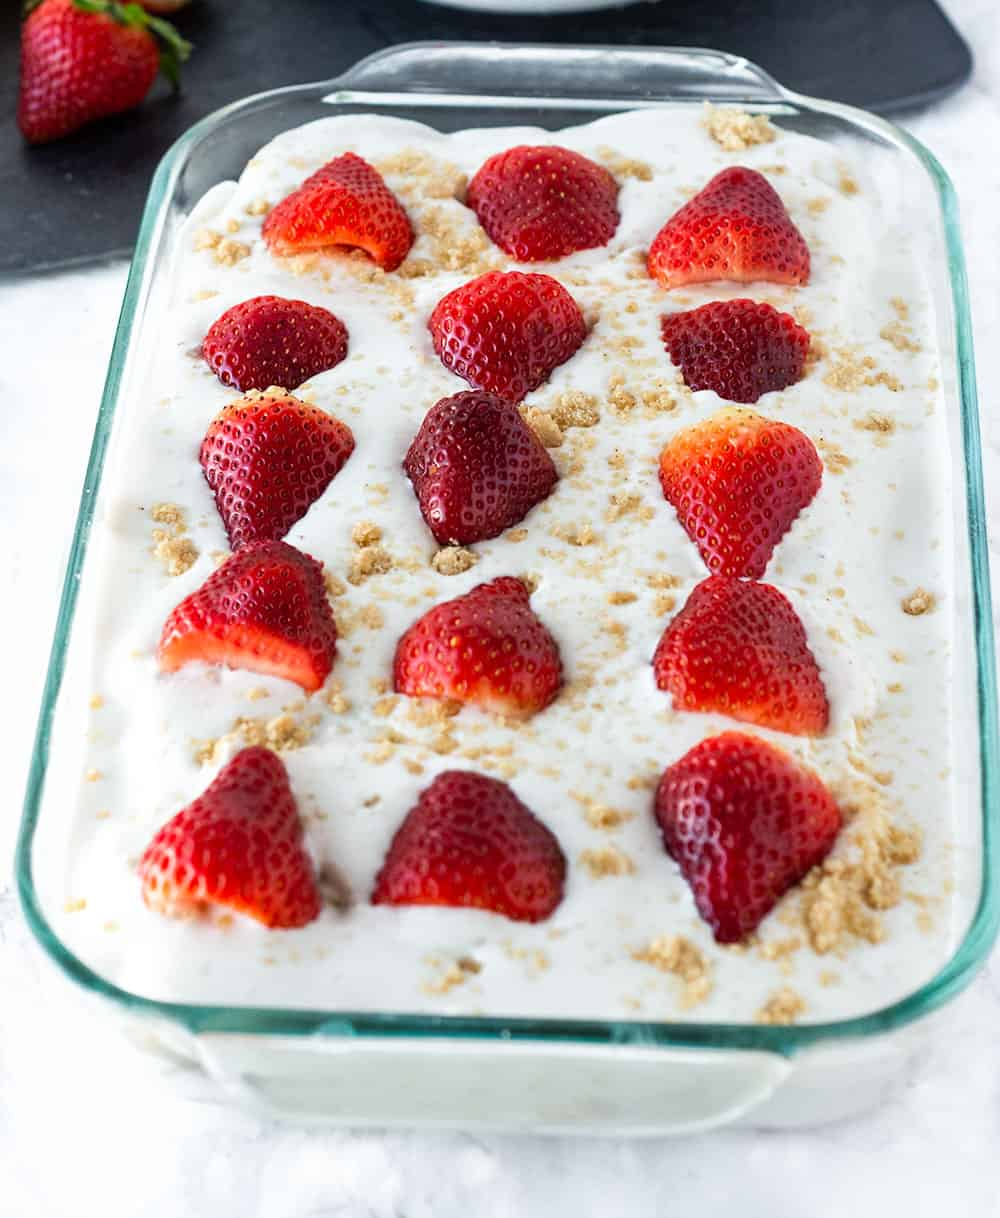 Strawberry Icebox cake vegan gluten-free in a glass dish topped with strawberries